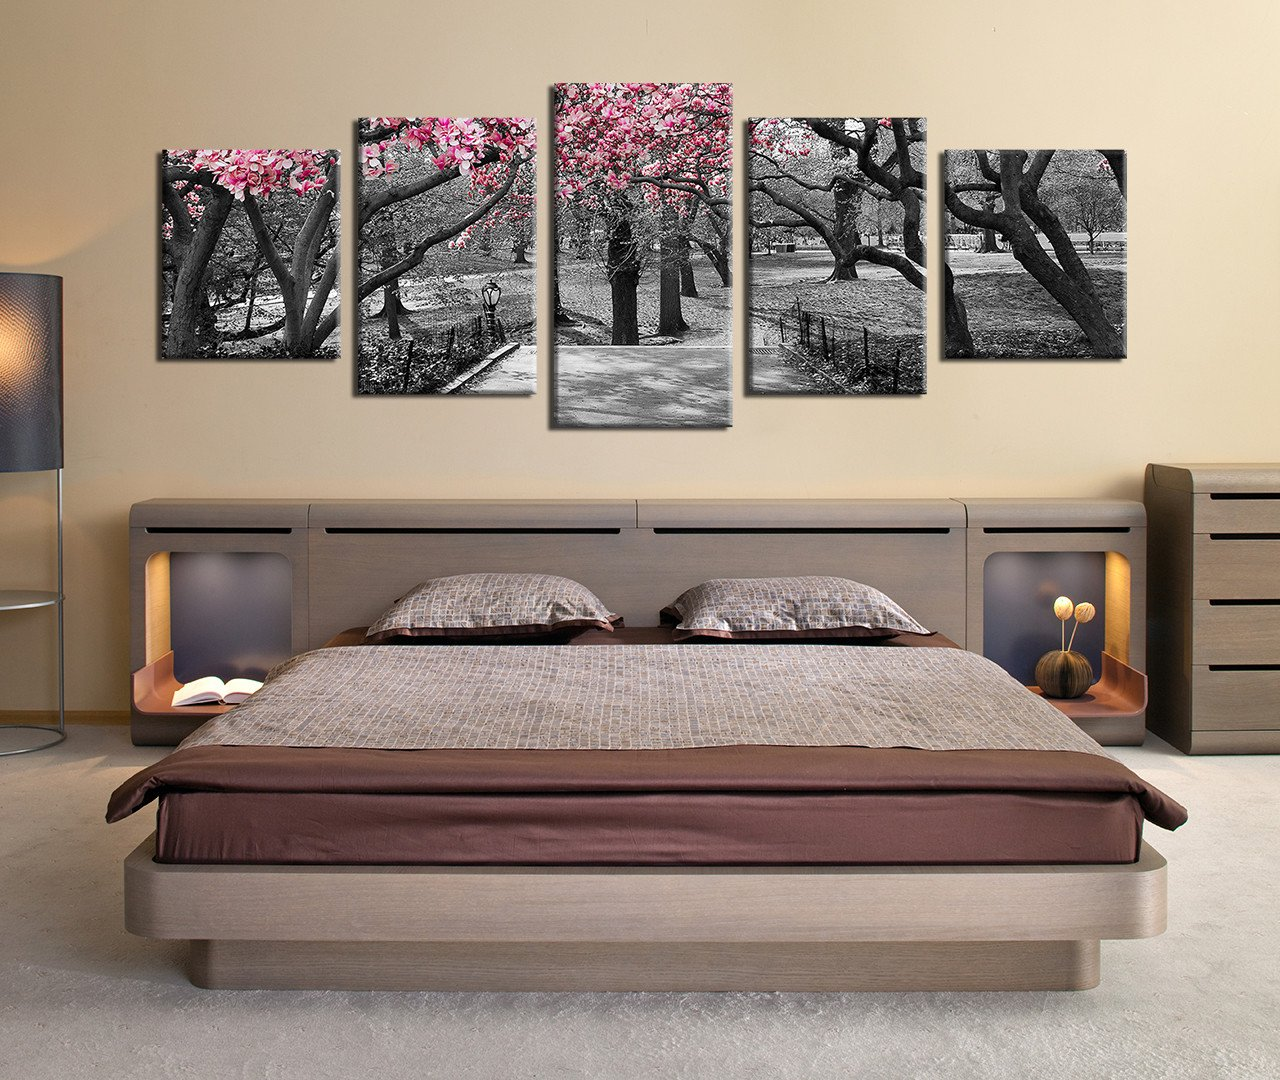 Artwork for Bedroom Wall Lovely Wall Wall Art In Bedroom